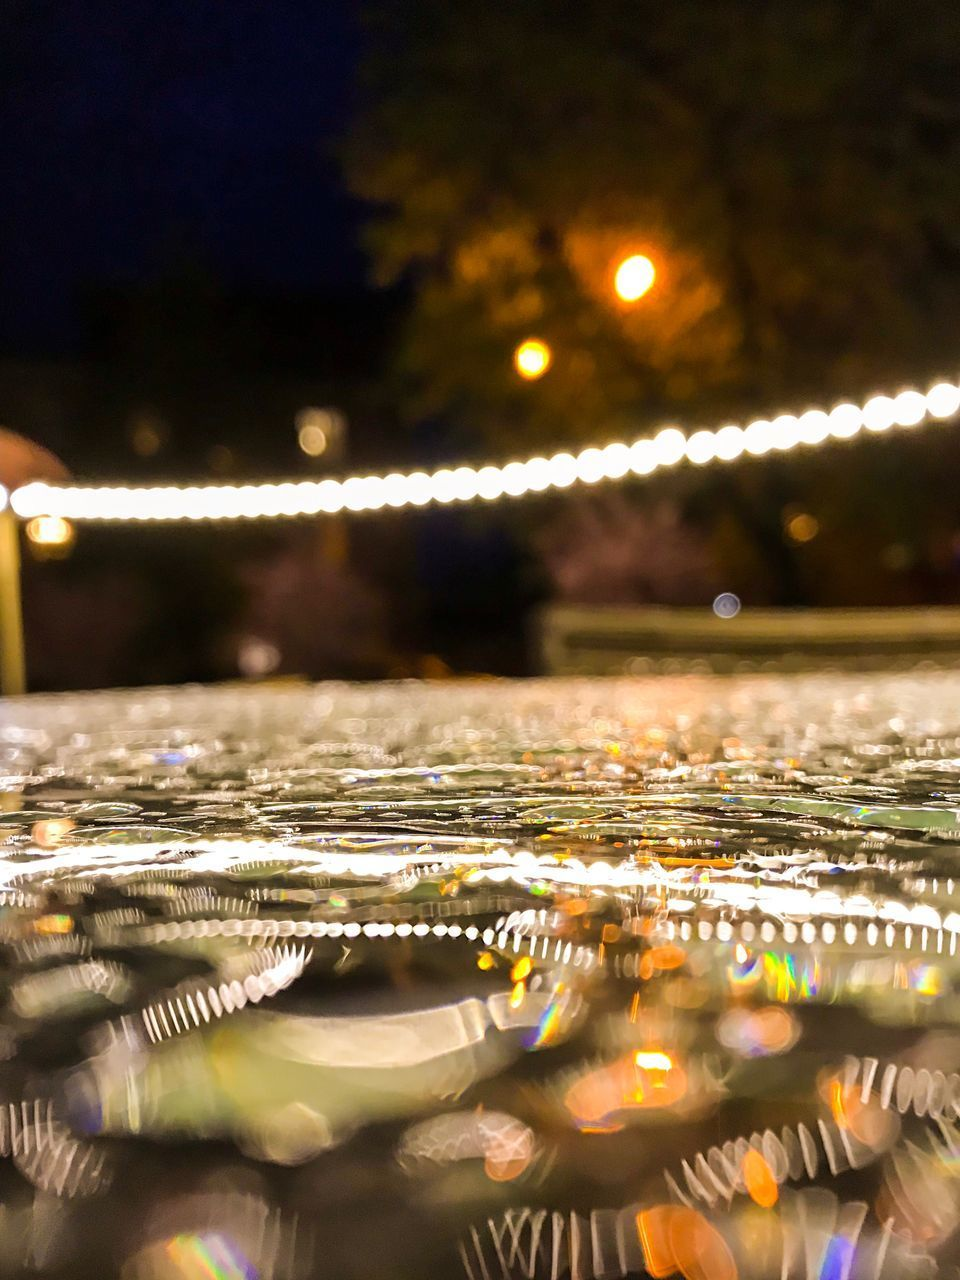 illuminated, night, water, selective focus, no people, glowing, lighting equipment, nature, close-up, outdoors, reflection, wet, motion, surface level, drop, sky, light - natural phenomenon, waterfront, beauty in nature, raindrop